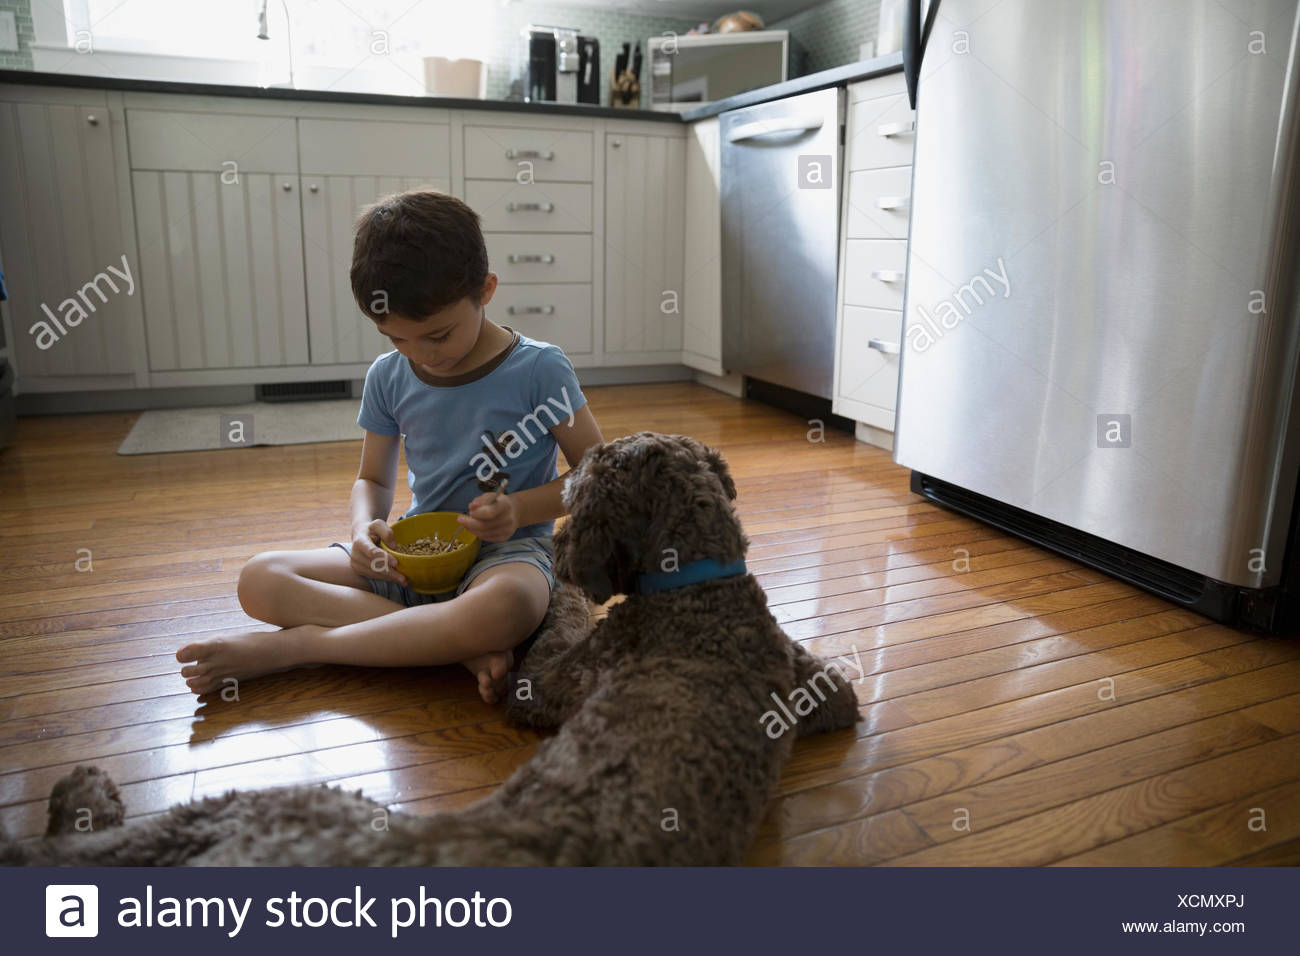 Dog watching boy eat cereal on kitchen floor - Stock Image